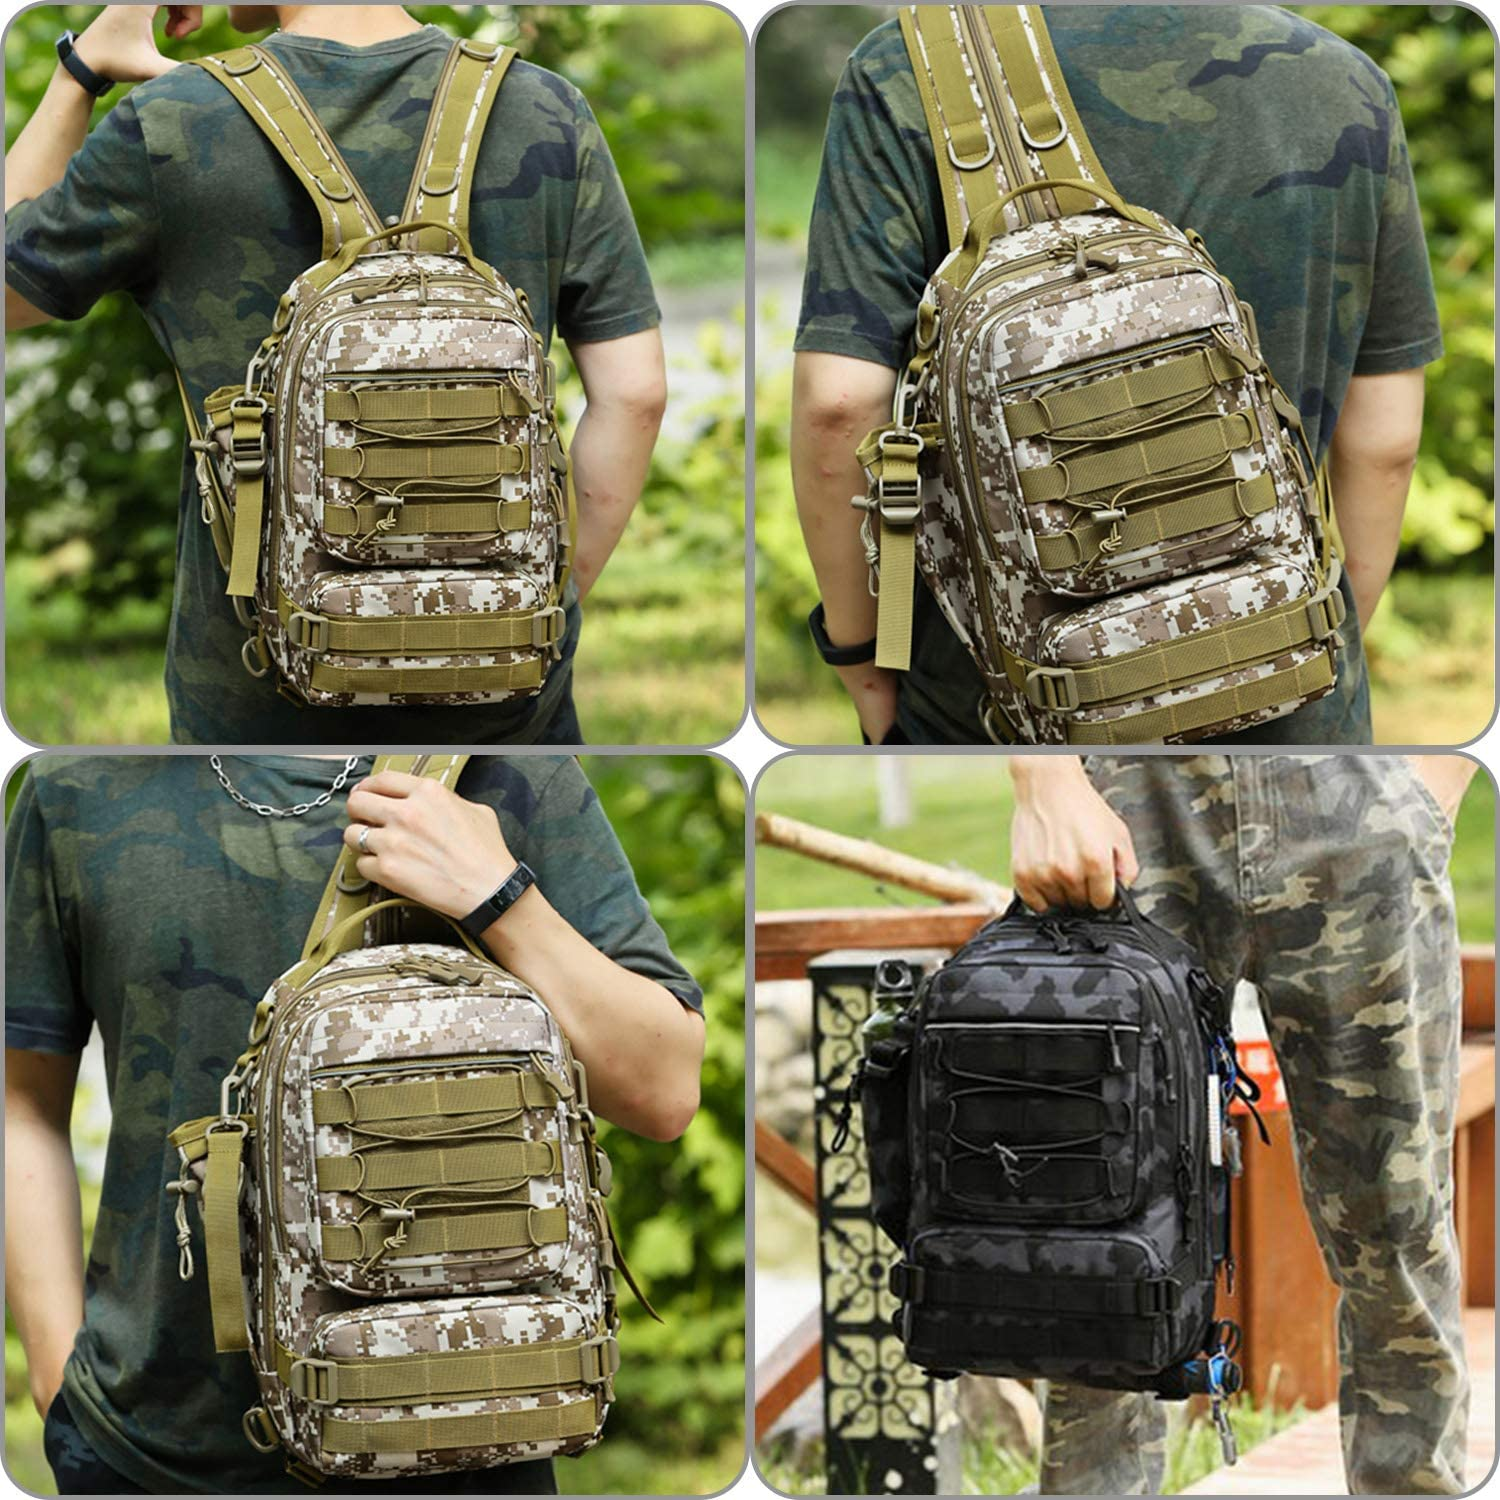 Large Water-Resistant Fishing Gear Bags with Rod Holder Shoulder Backpack and a Sturdy Fishing Tackle Box Thekuai Fishing Tackle Backpack Storage Bag Outdoor Shoulder Backpack